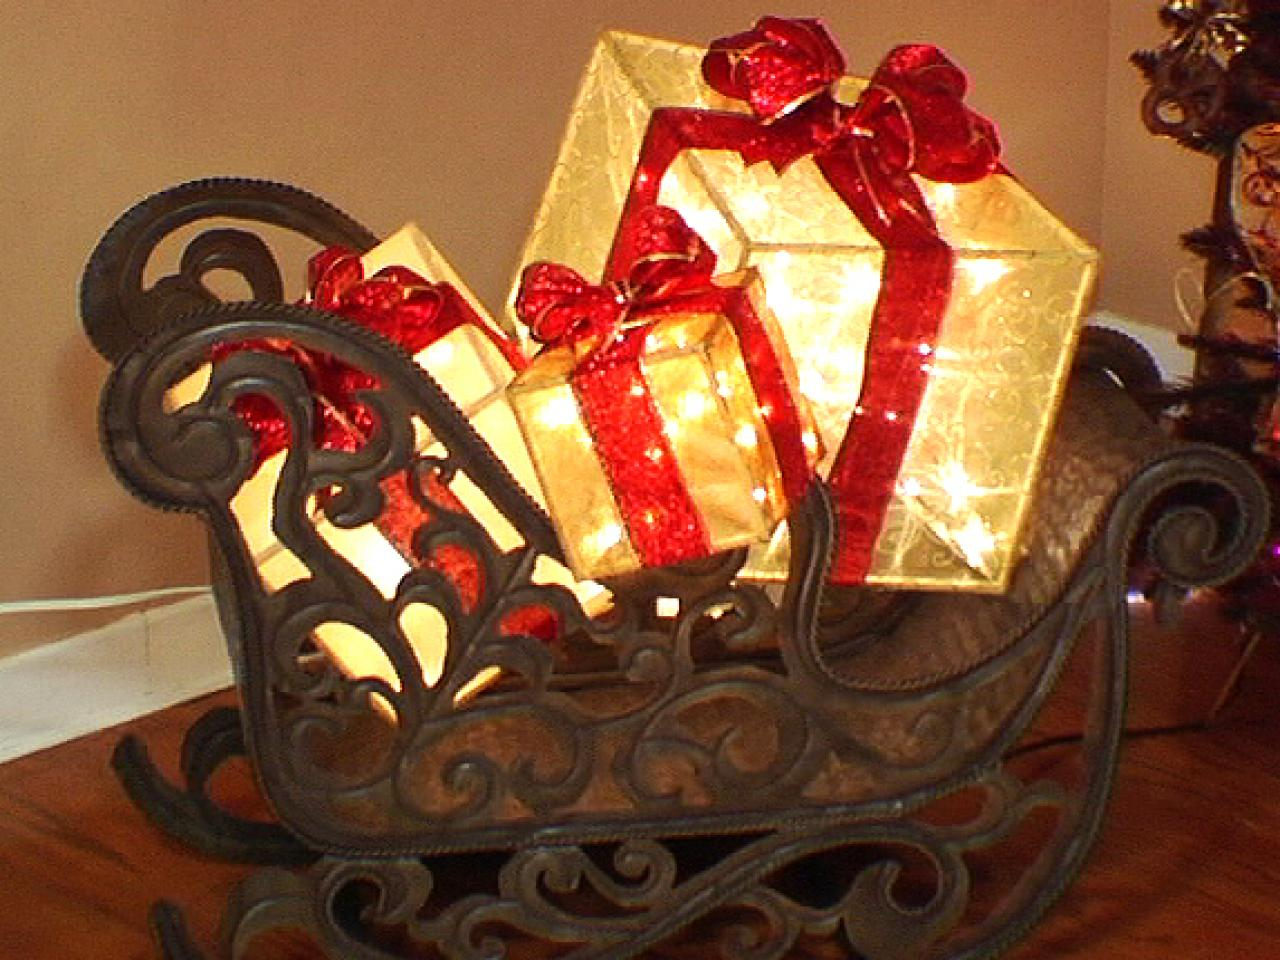 Lighted christmas gift boxes yard decor - Holiday Gift Boxes On Sled